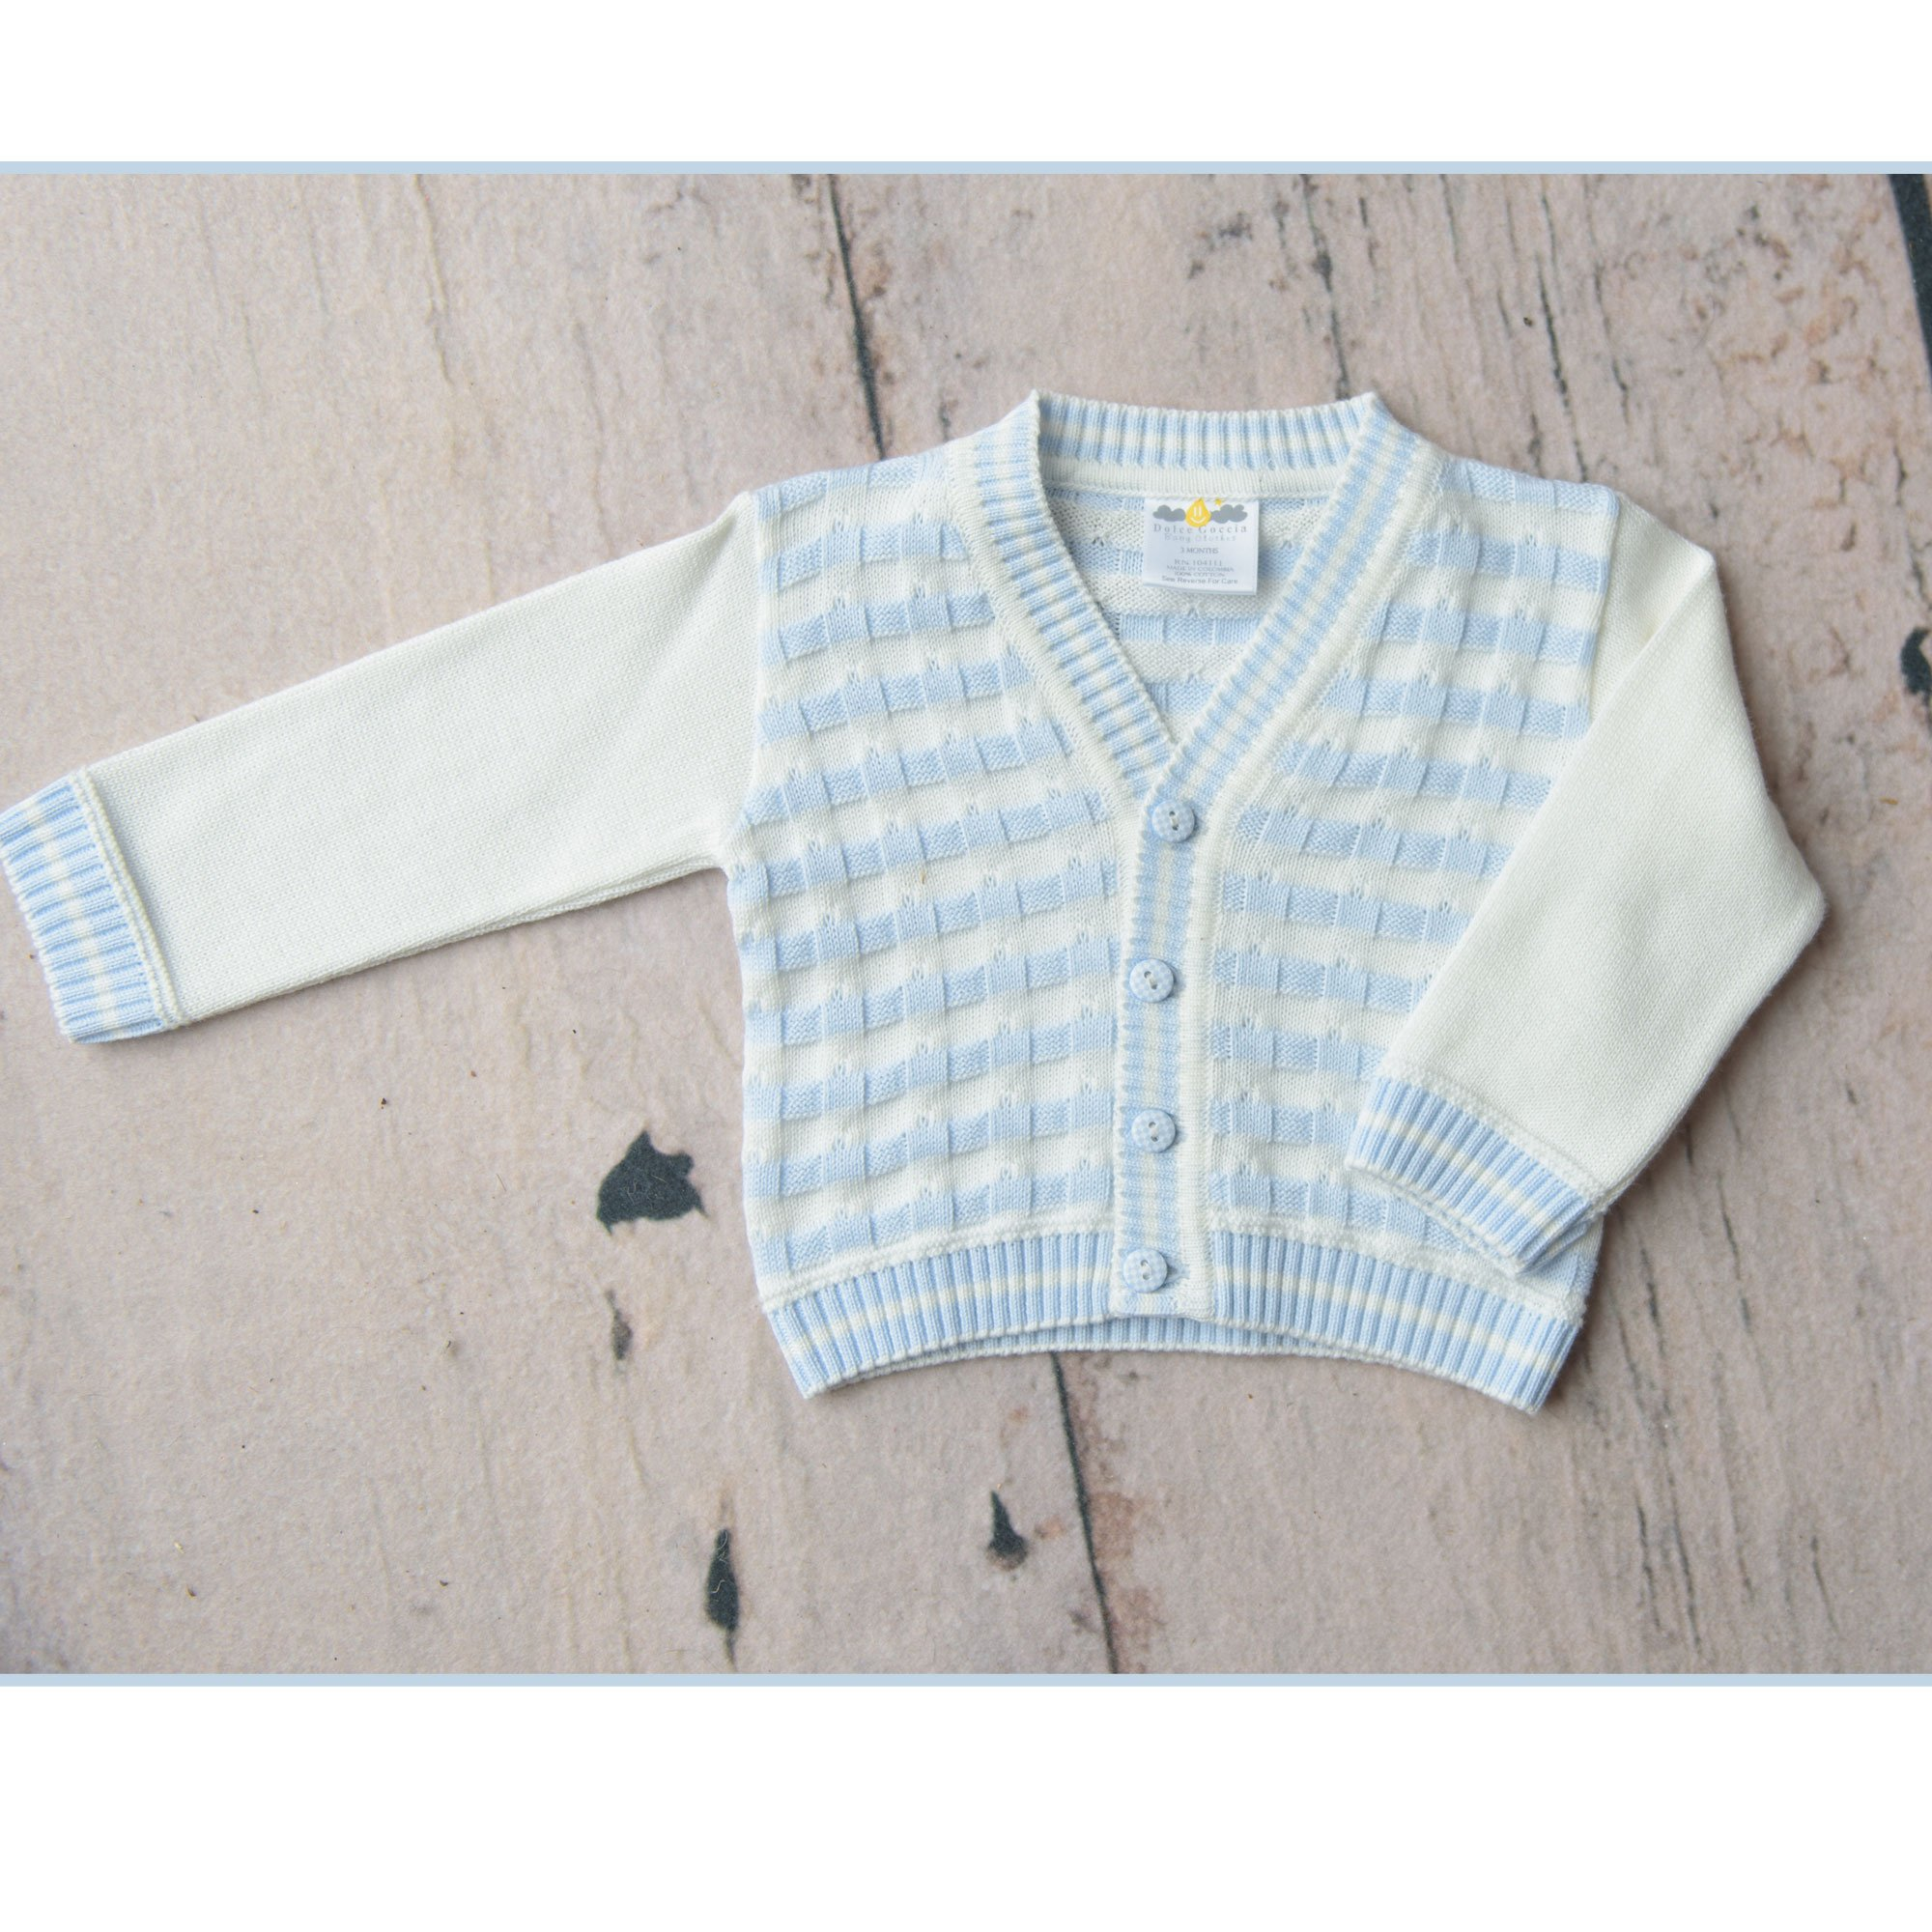 fb6733c8ebe7 Dolce Goccia Blue and White Liam Knit Cardigan for Baby Boys